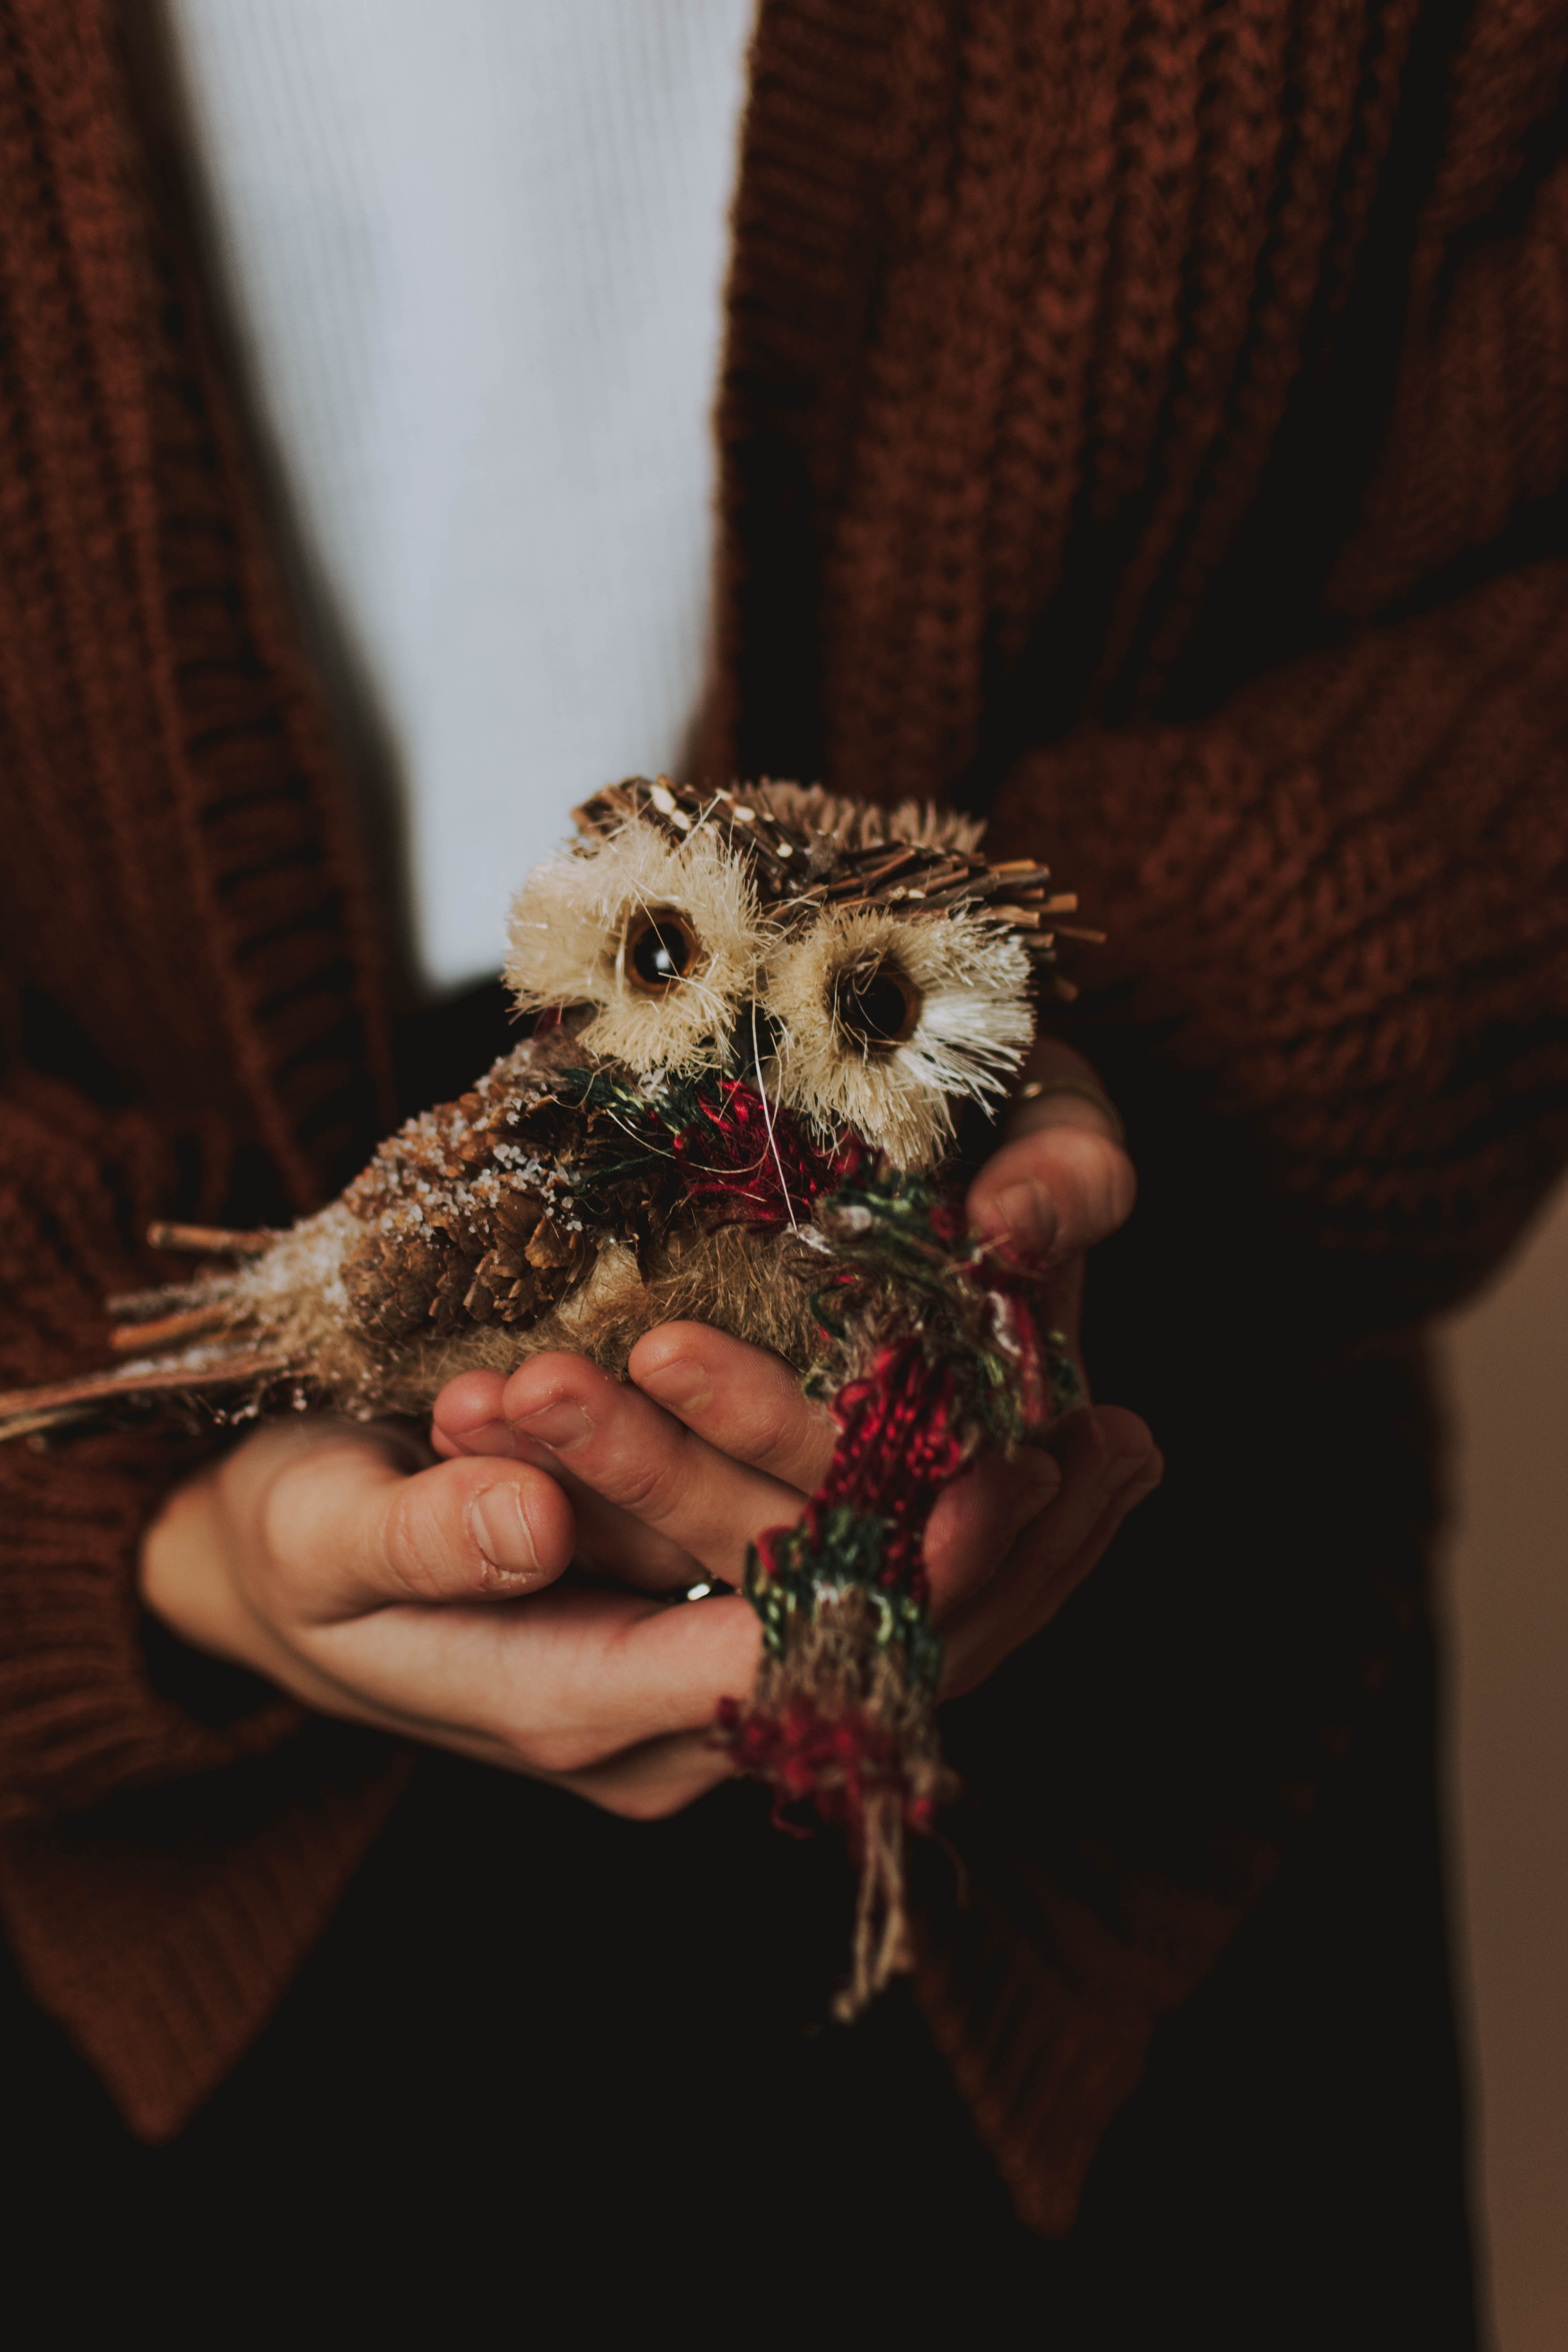 92418 download wallpaper Miscellanea, Miscellaneous, Owl, Toy, Decoration, Bird, Hands screensavers and pictures for free